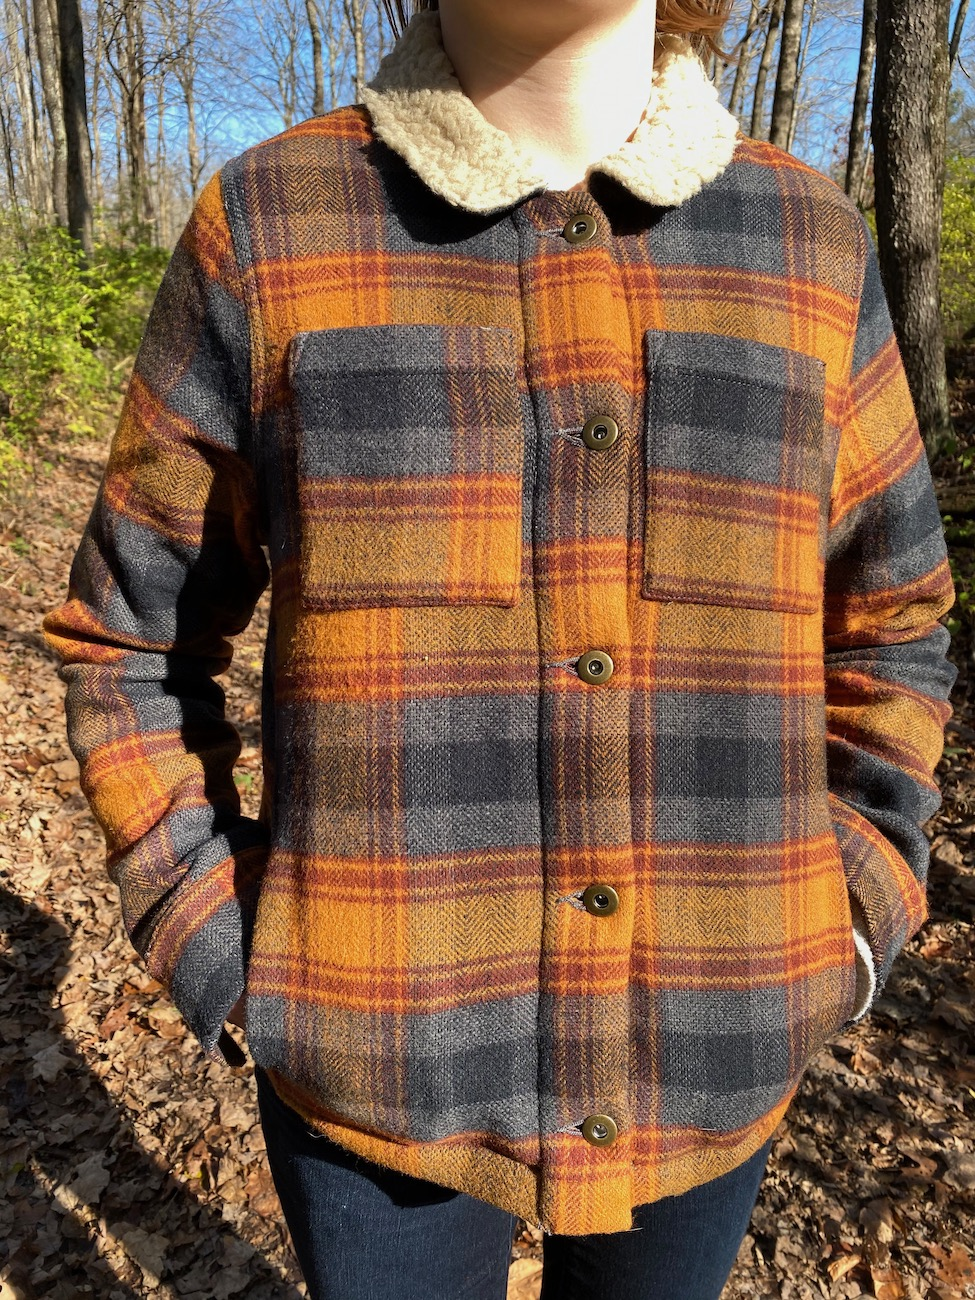 "<p>Toad & Co.'s Burntside Trucker Jacket boasts a blended ombre plaid with recycled wool and polyester sherpa fleece lining. It fits like a classic denim jacket, but is a lot toastier and is moisture-wicking and wrinkle resistant. /{&nbsp;}<a  href=""https://www.toadandco.com/"" target=""_blank"" title=""https://www.toadandco.com/"">Website{&nbsp;}</a>/ Price: $180 / Image: Chez Chesak // Published: 12.6.20</p>"